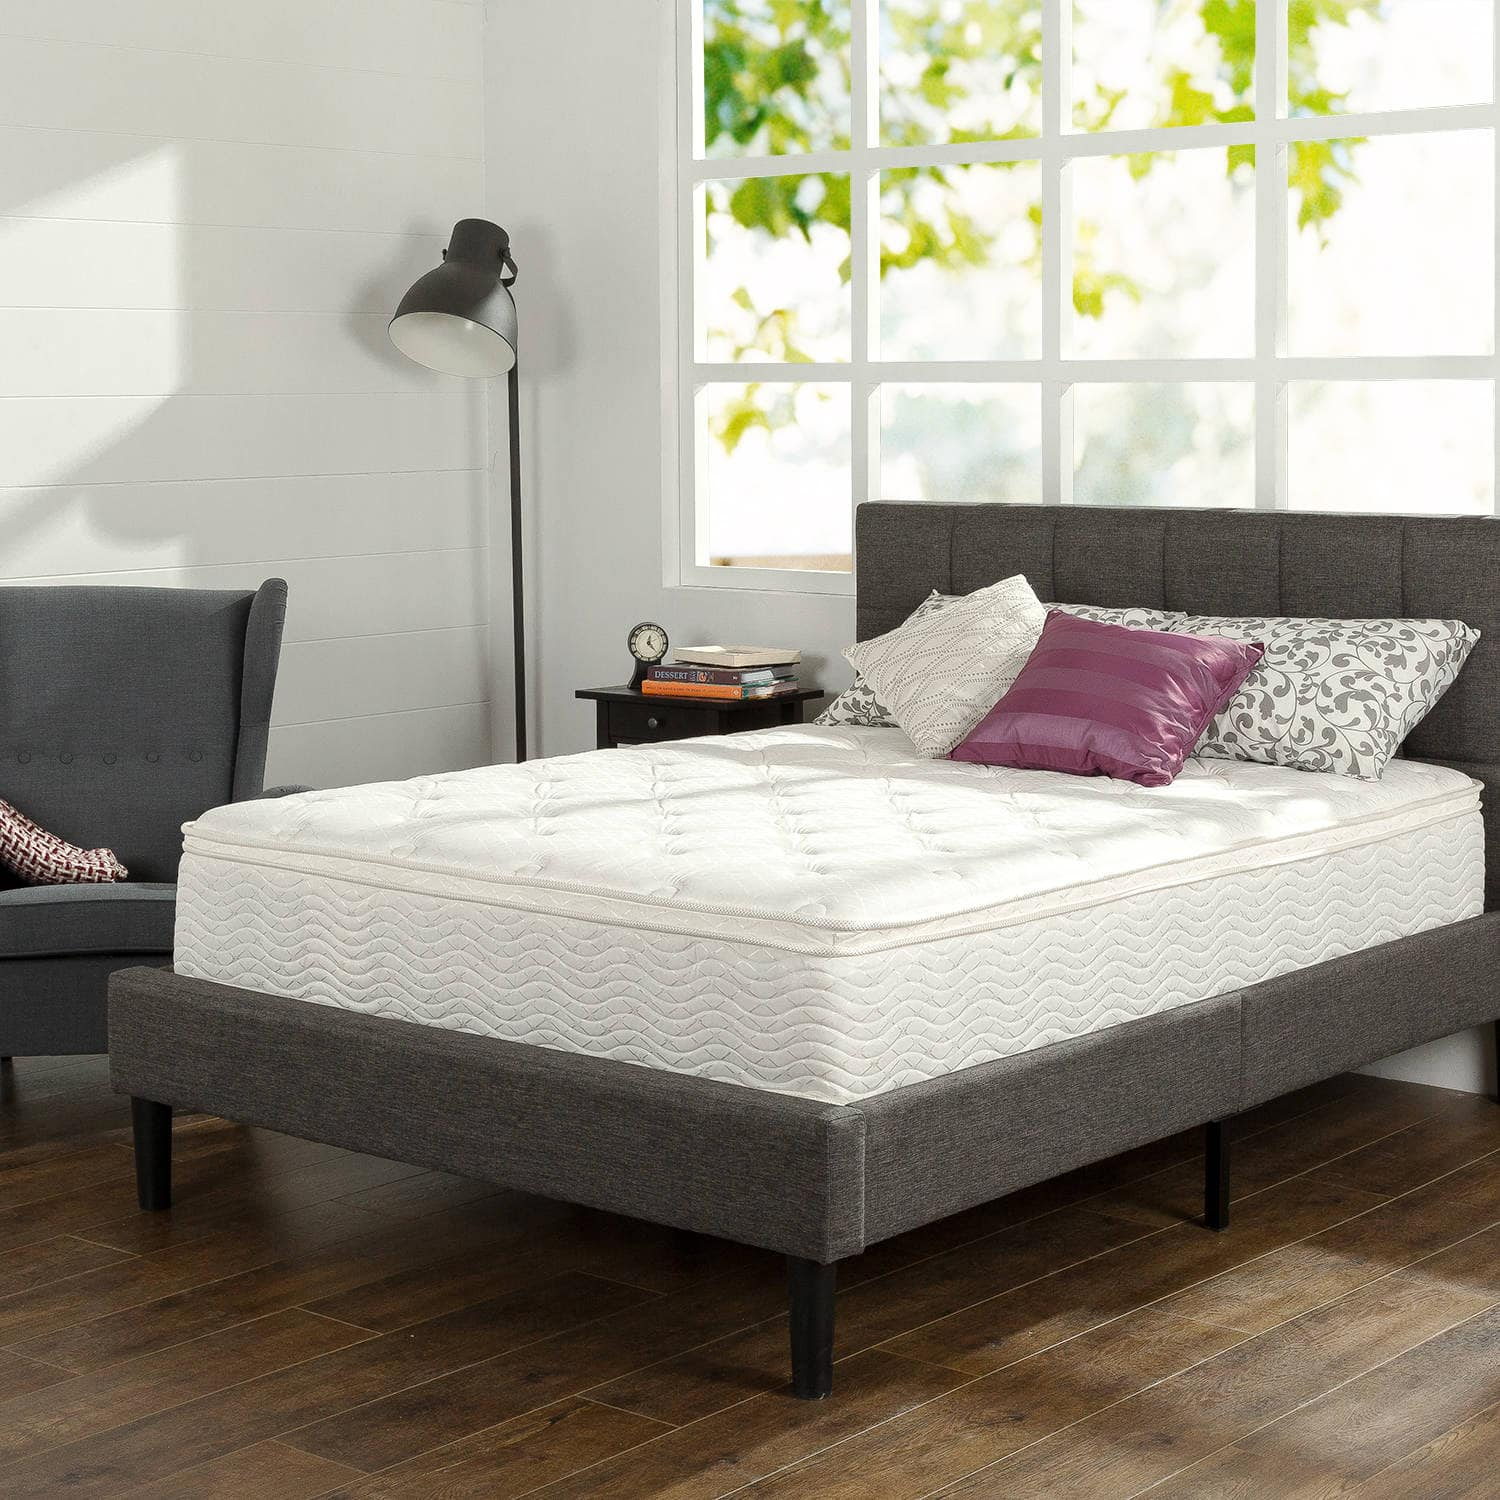 slumber 1 12 comfort euro box top spring mattress various sizes. Black Bedroom Furniture Sets. Home Design Ideas